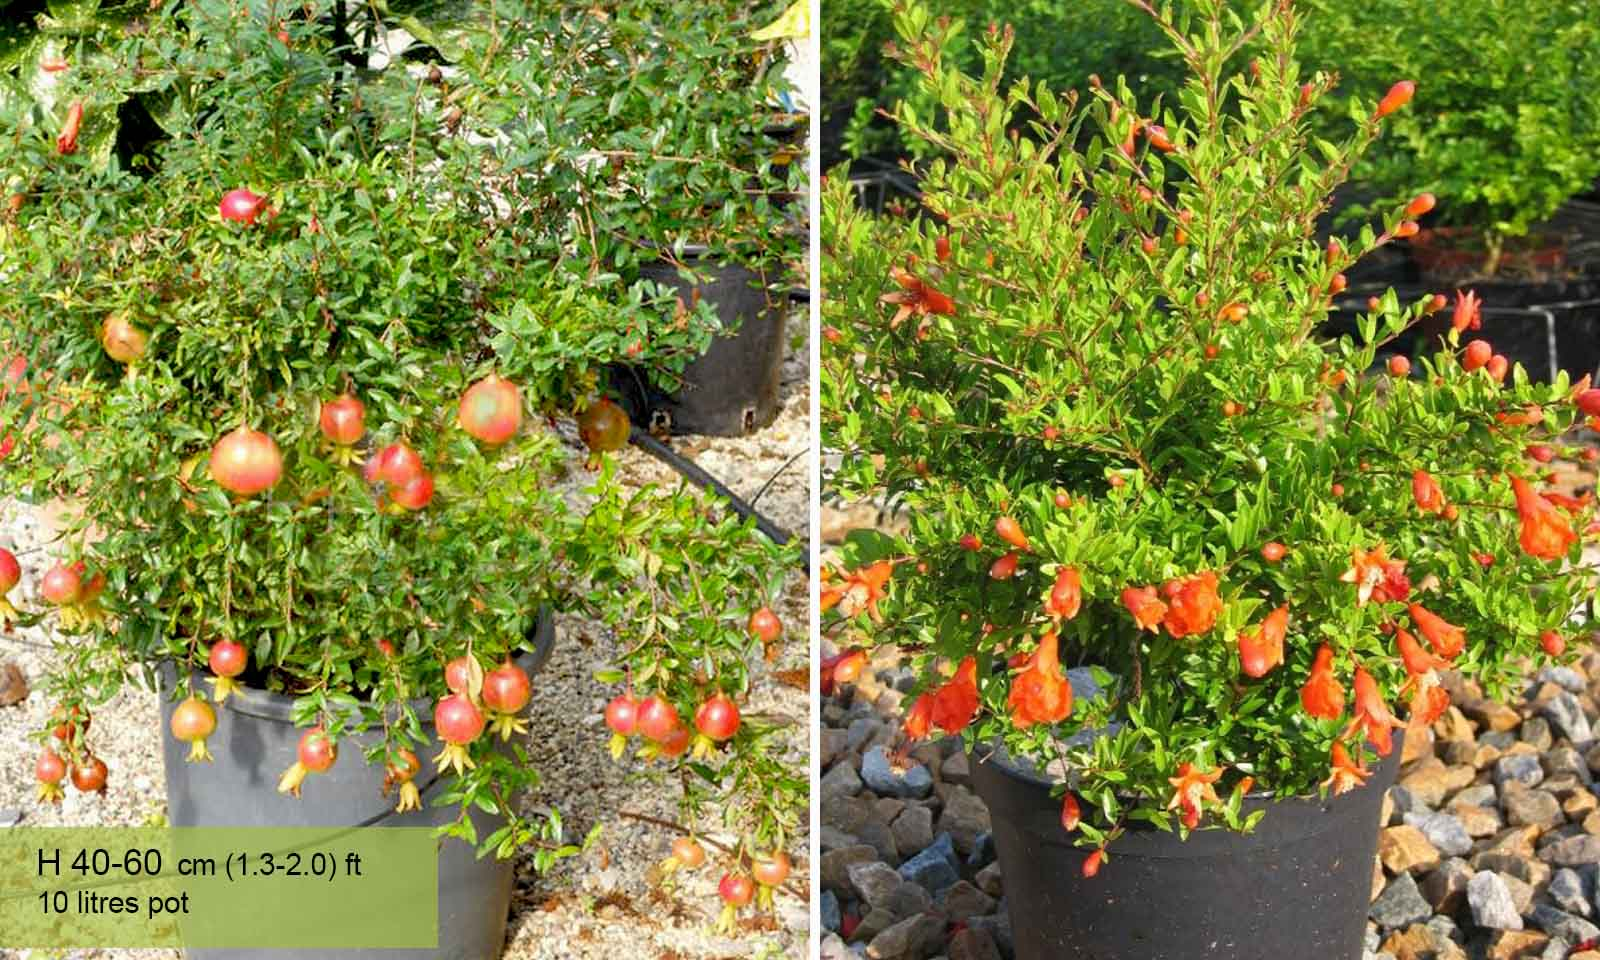 Punica Granatum Nana (Pomegranate Tree) - Shrub